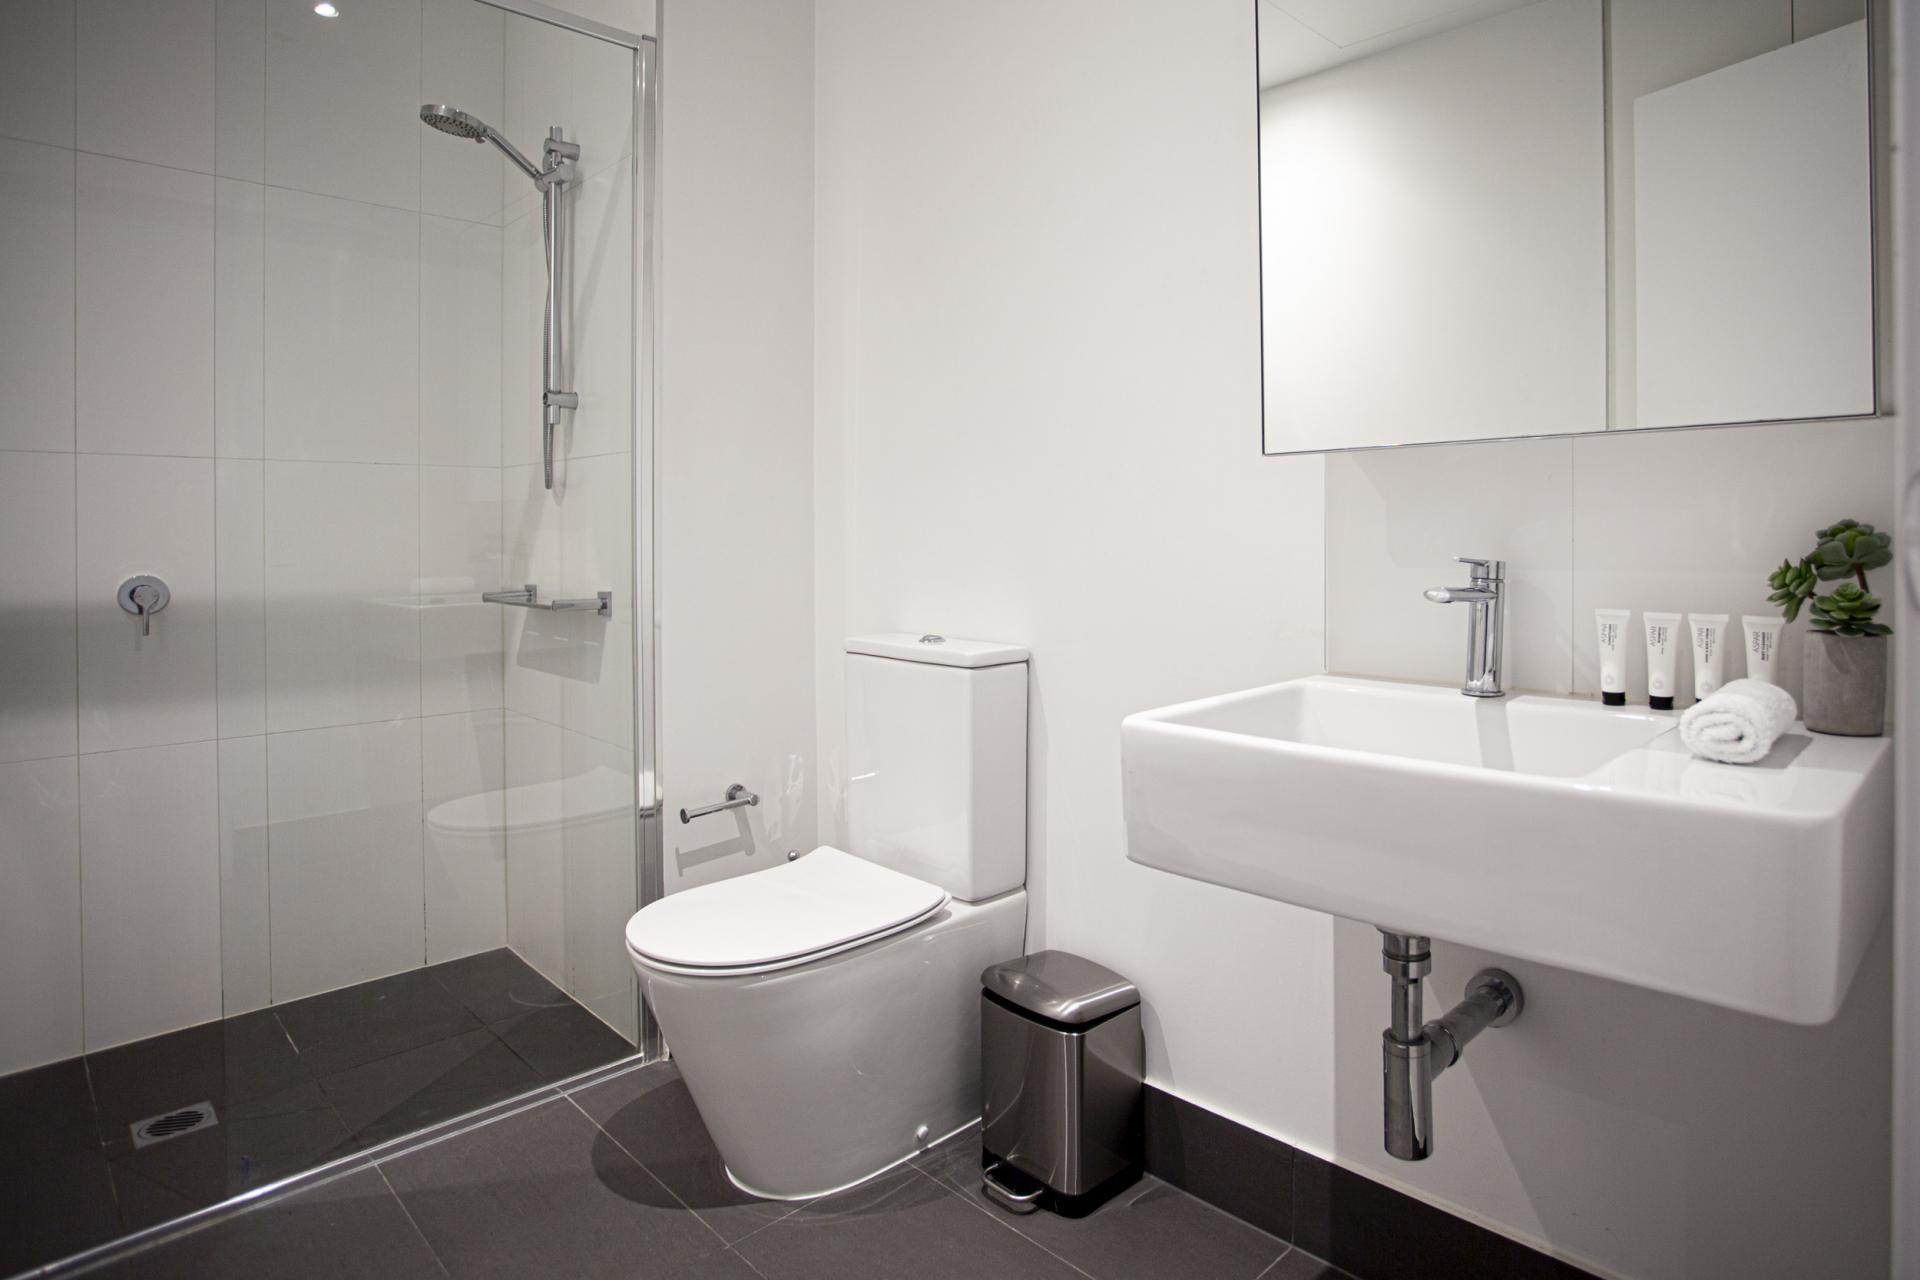 Bathroom at BedThe Bella Apartments, South Melbourne, Melbourne